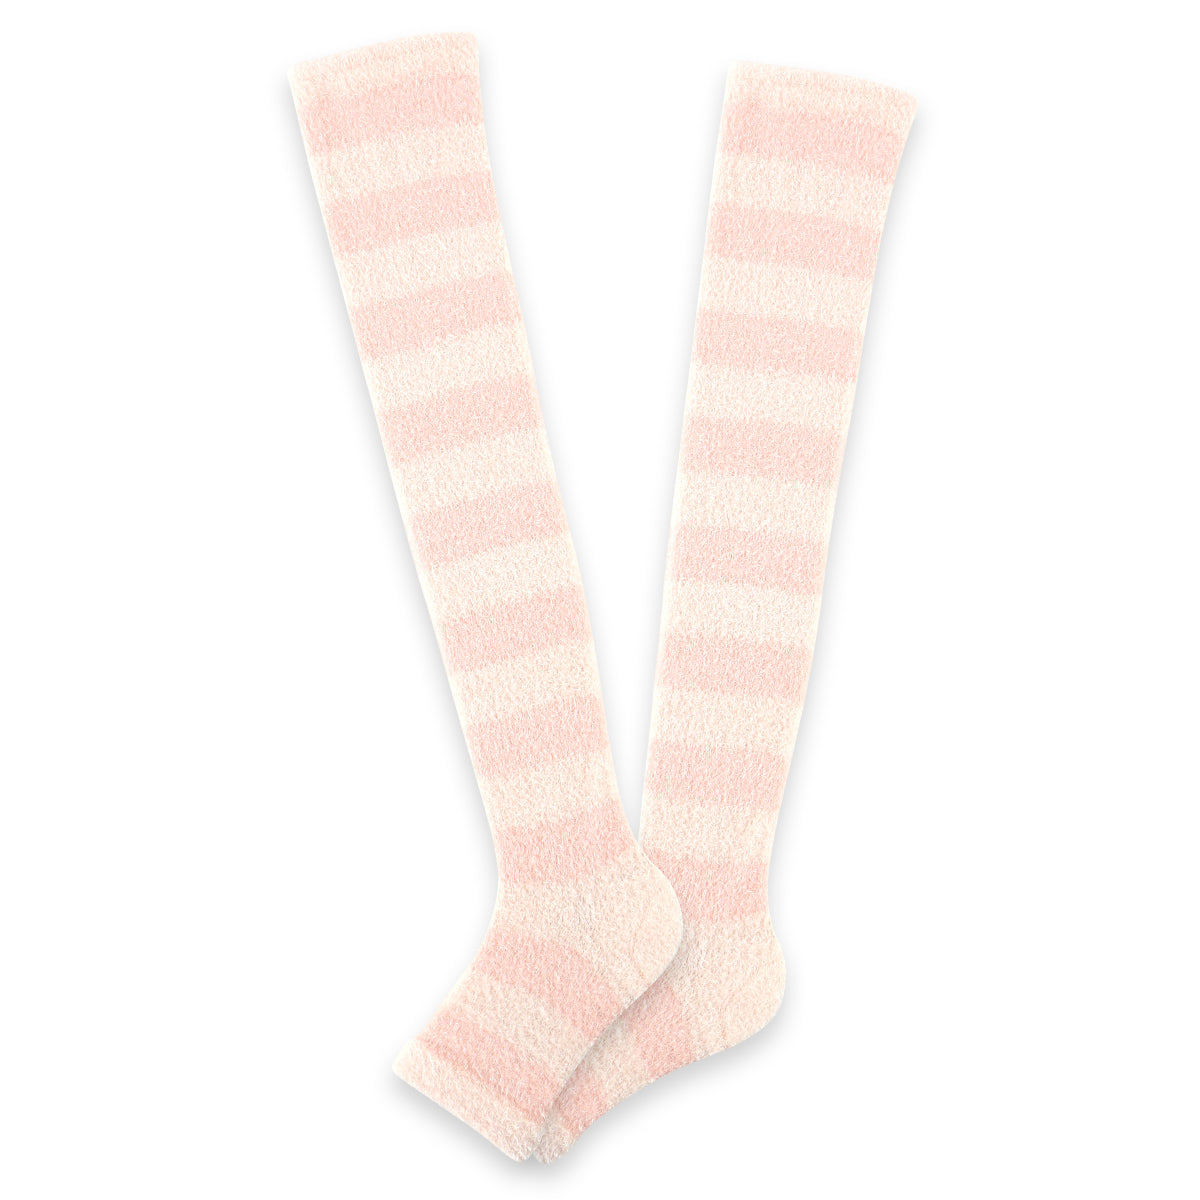 Refreshing Toeless Compression Socks | Over-the-knee | Pink - CHERRYSTONE